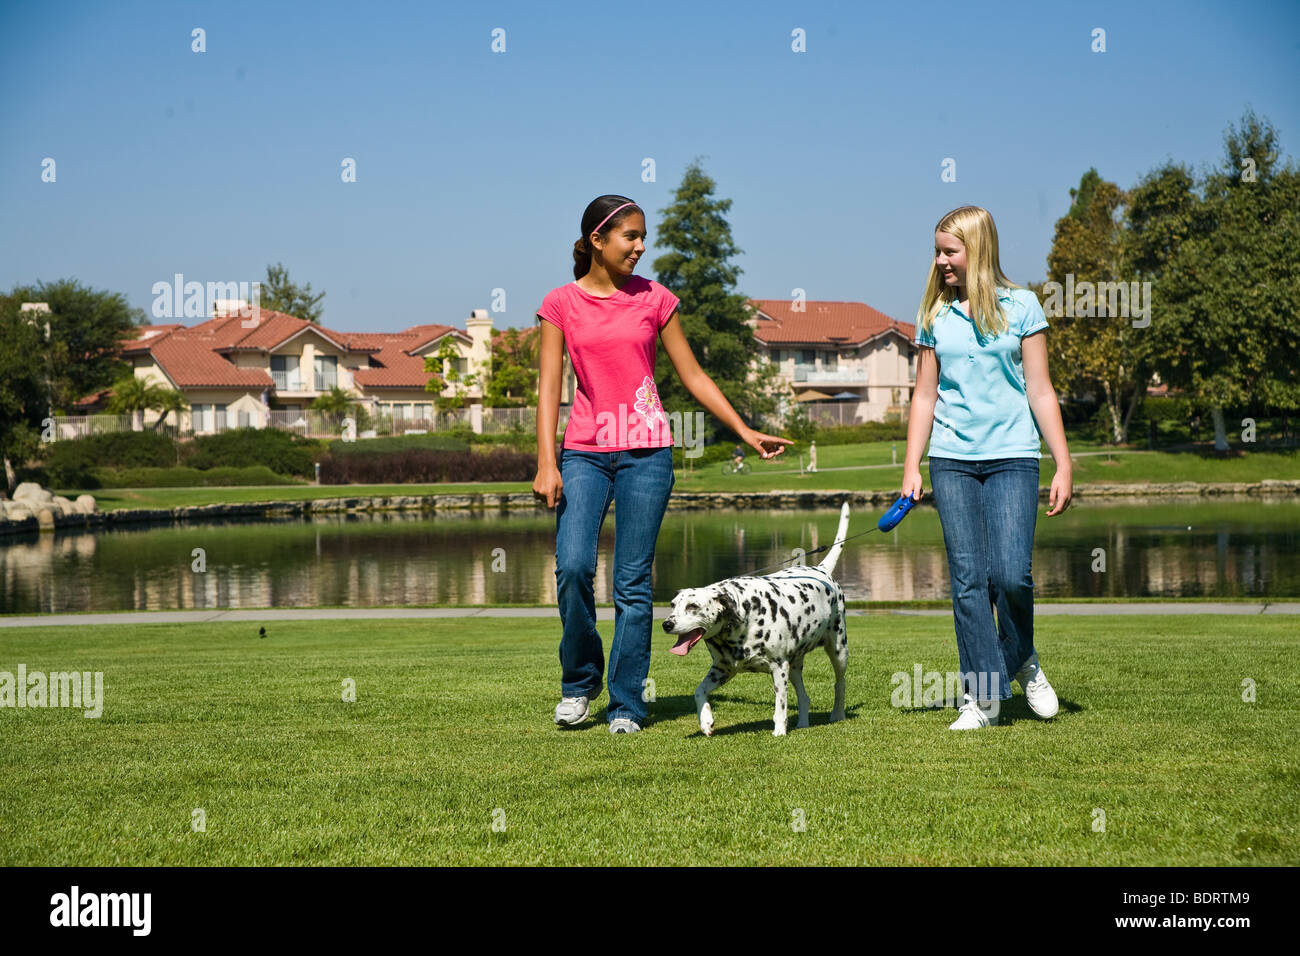 hanging out racially mixed racial mix Multi ethnic Hispanic and Caucasian teenage girls walking Tween tweens talking.dog - Stock Image